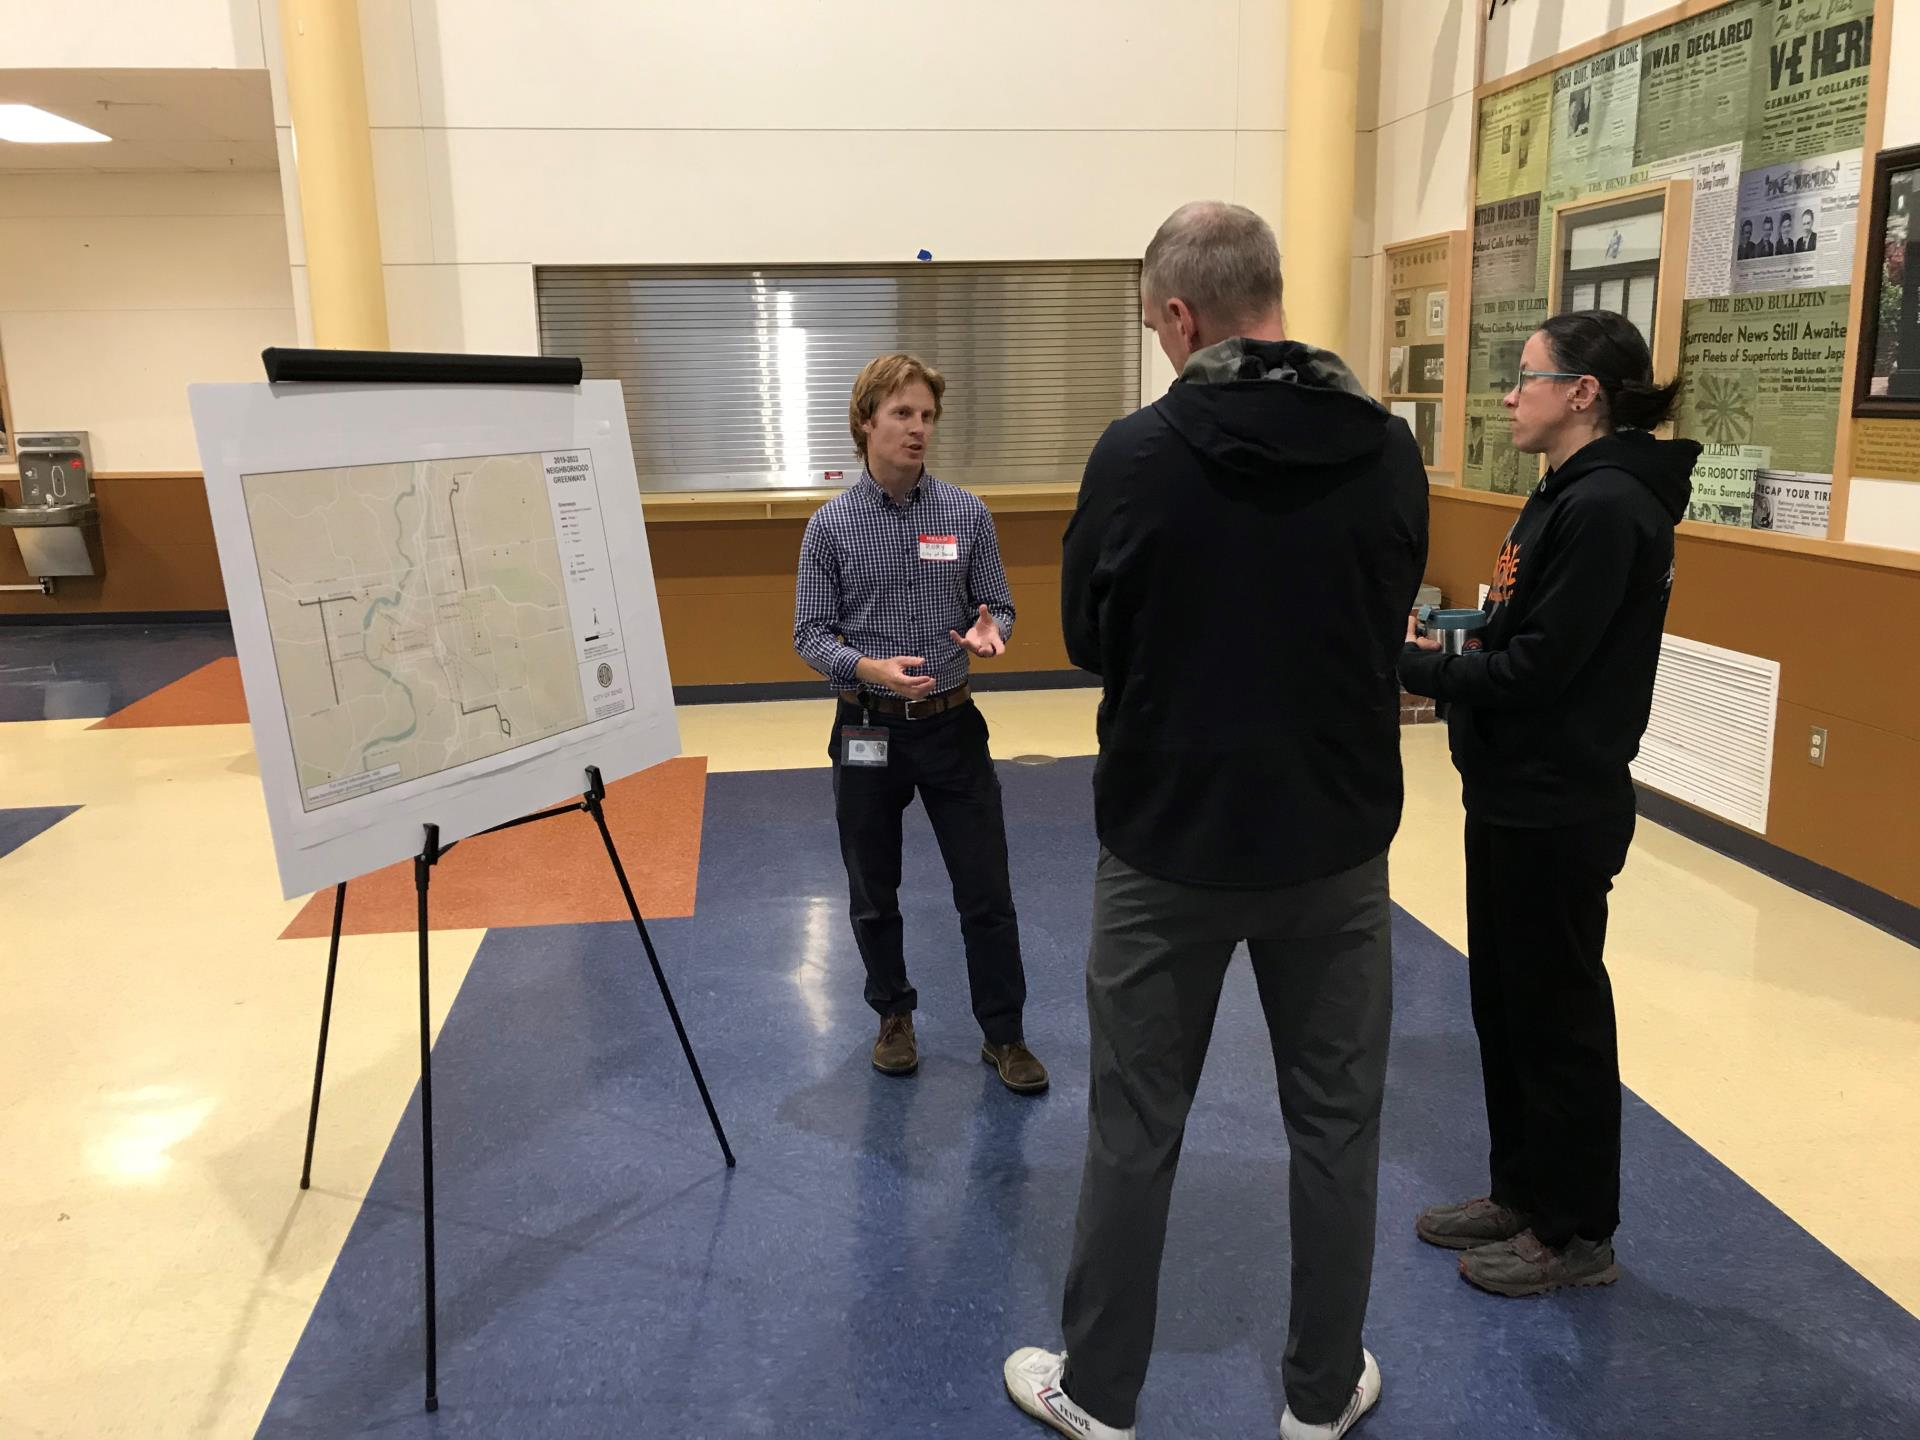 Photo of City project manager speaking with community members next to project map at open house